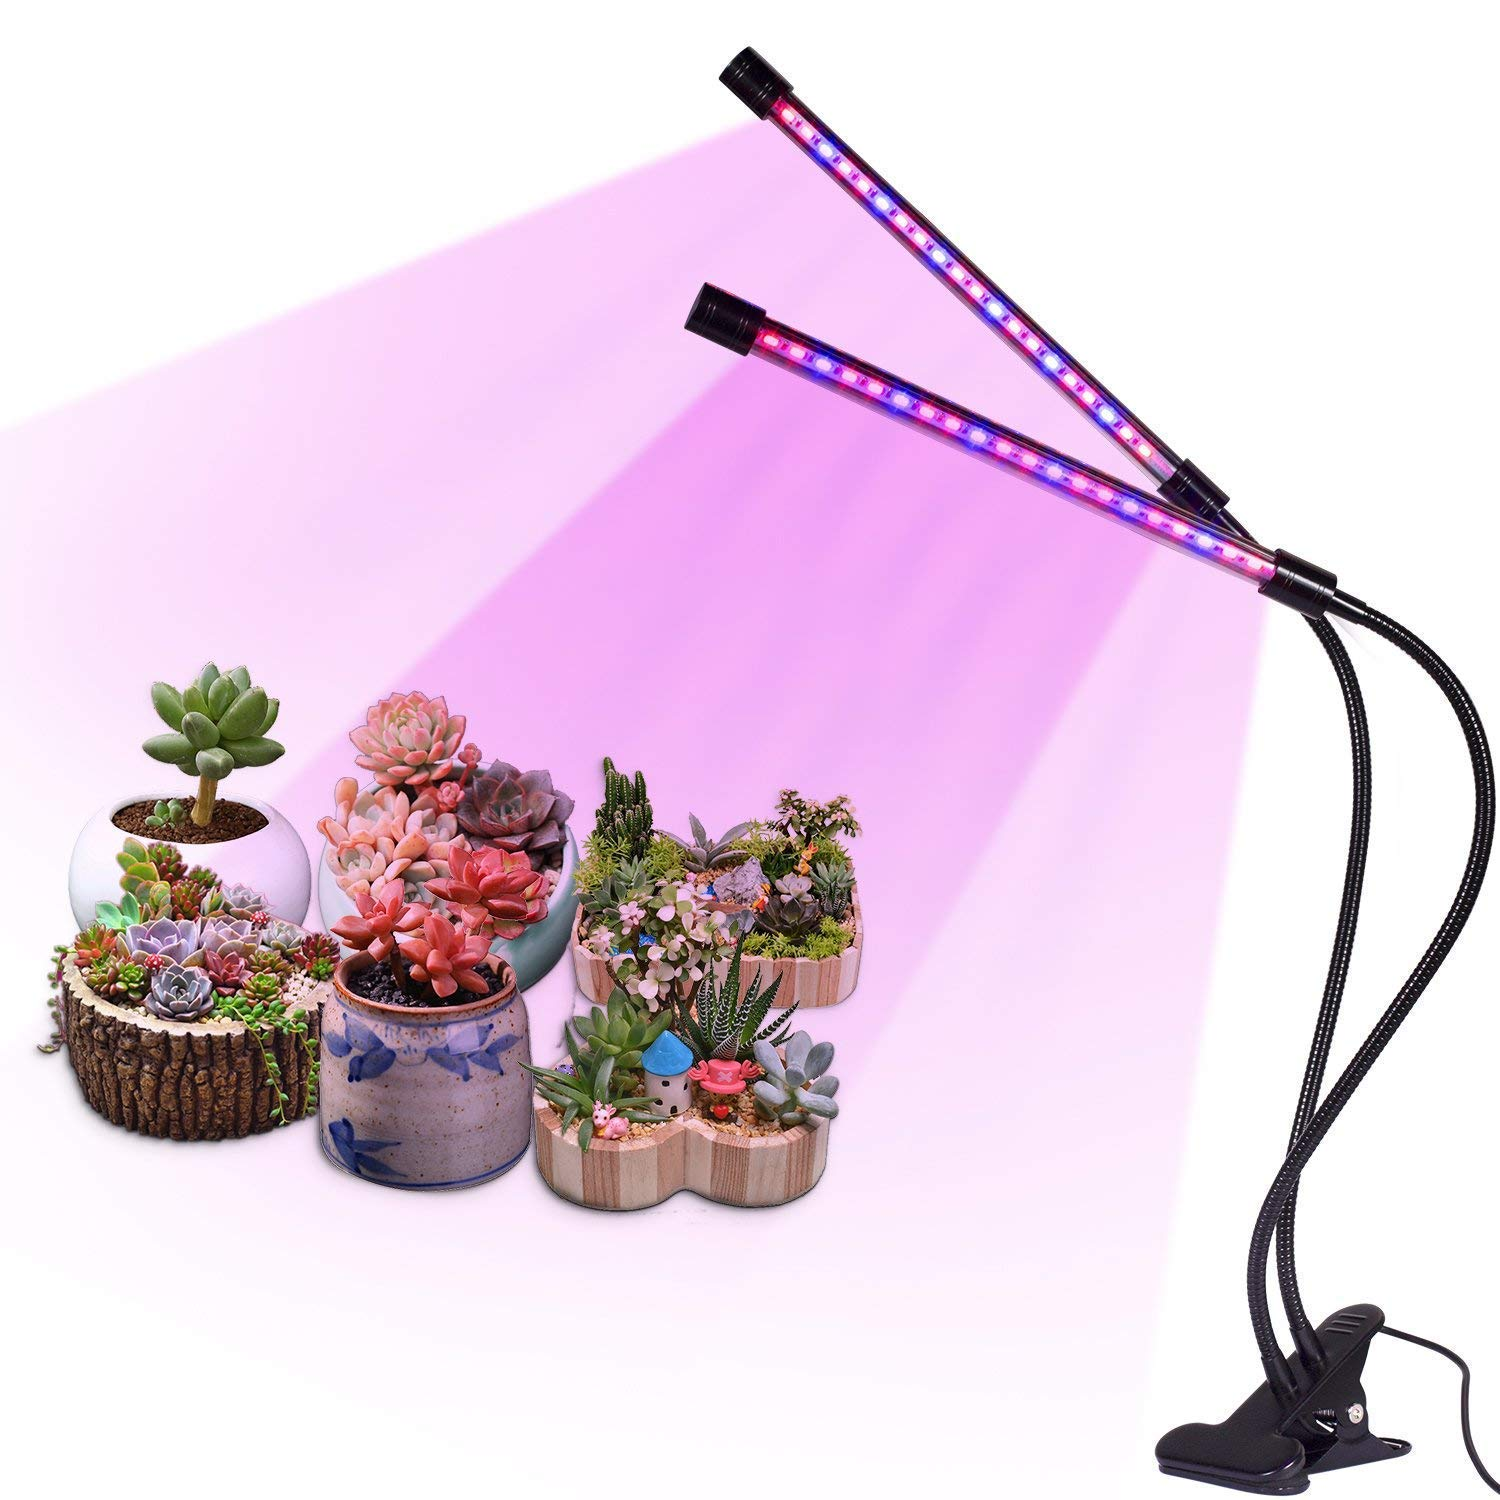 LED Plant Grow Light with Auto Turn On Function, slitinto Dual Head 18W 36 LED 5 Dimmable Levels Grow Lamp Bulbs, 3/9/12H Timer, Spectrum Switching, Adjustable Gooseneck for Indoor Plants